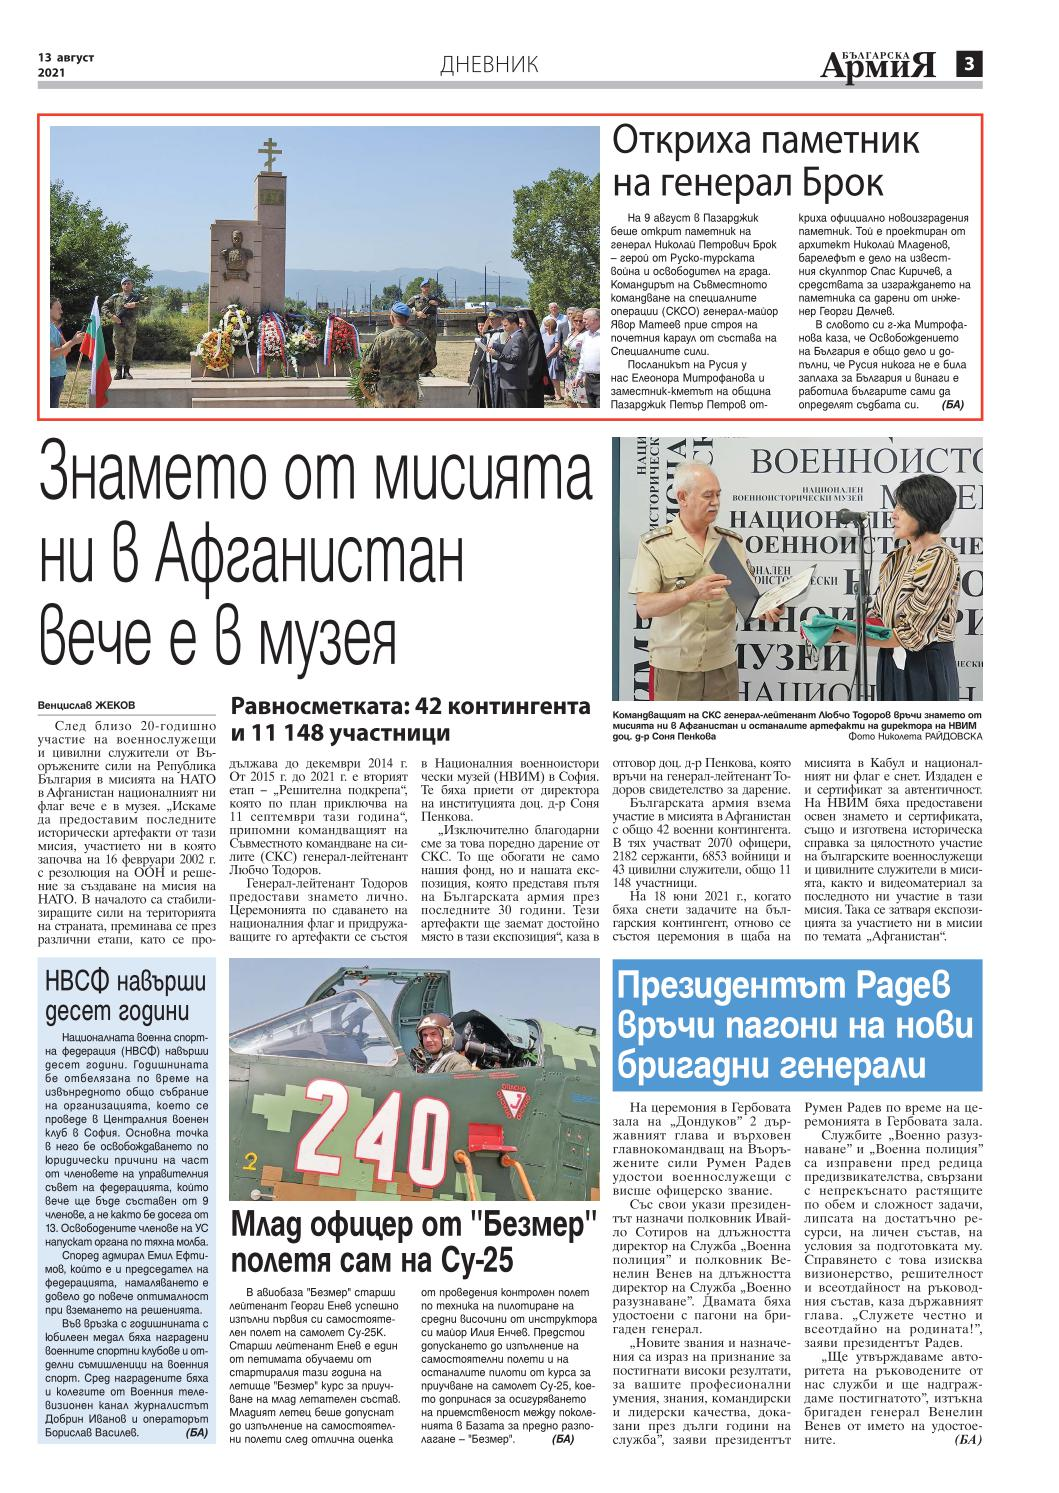 https://armymedia.bg/wp-content/uploads/2021/08/03.page1_-1.jpg